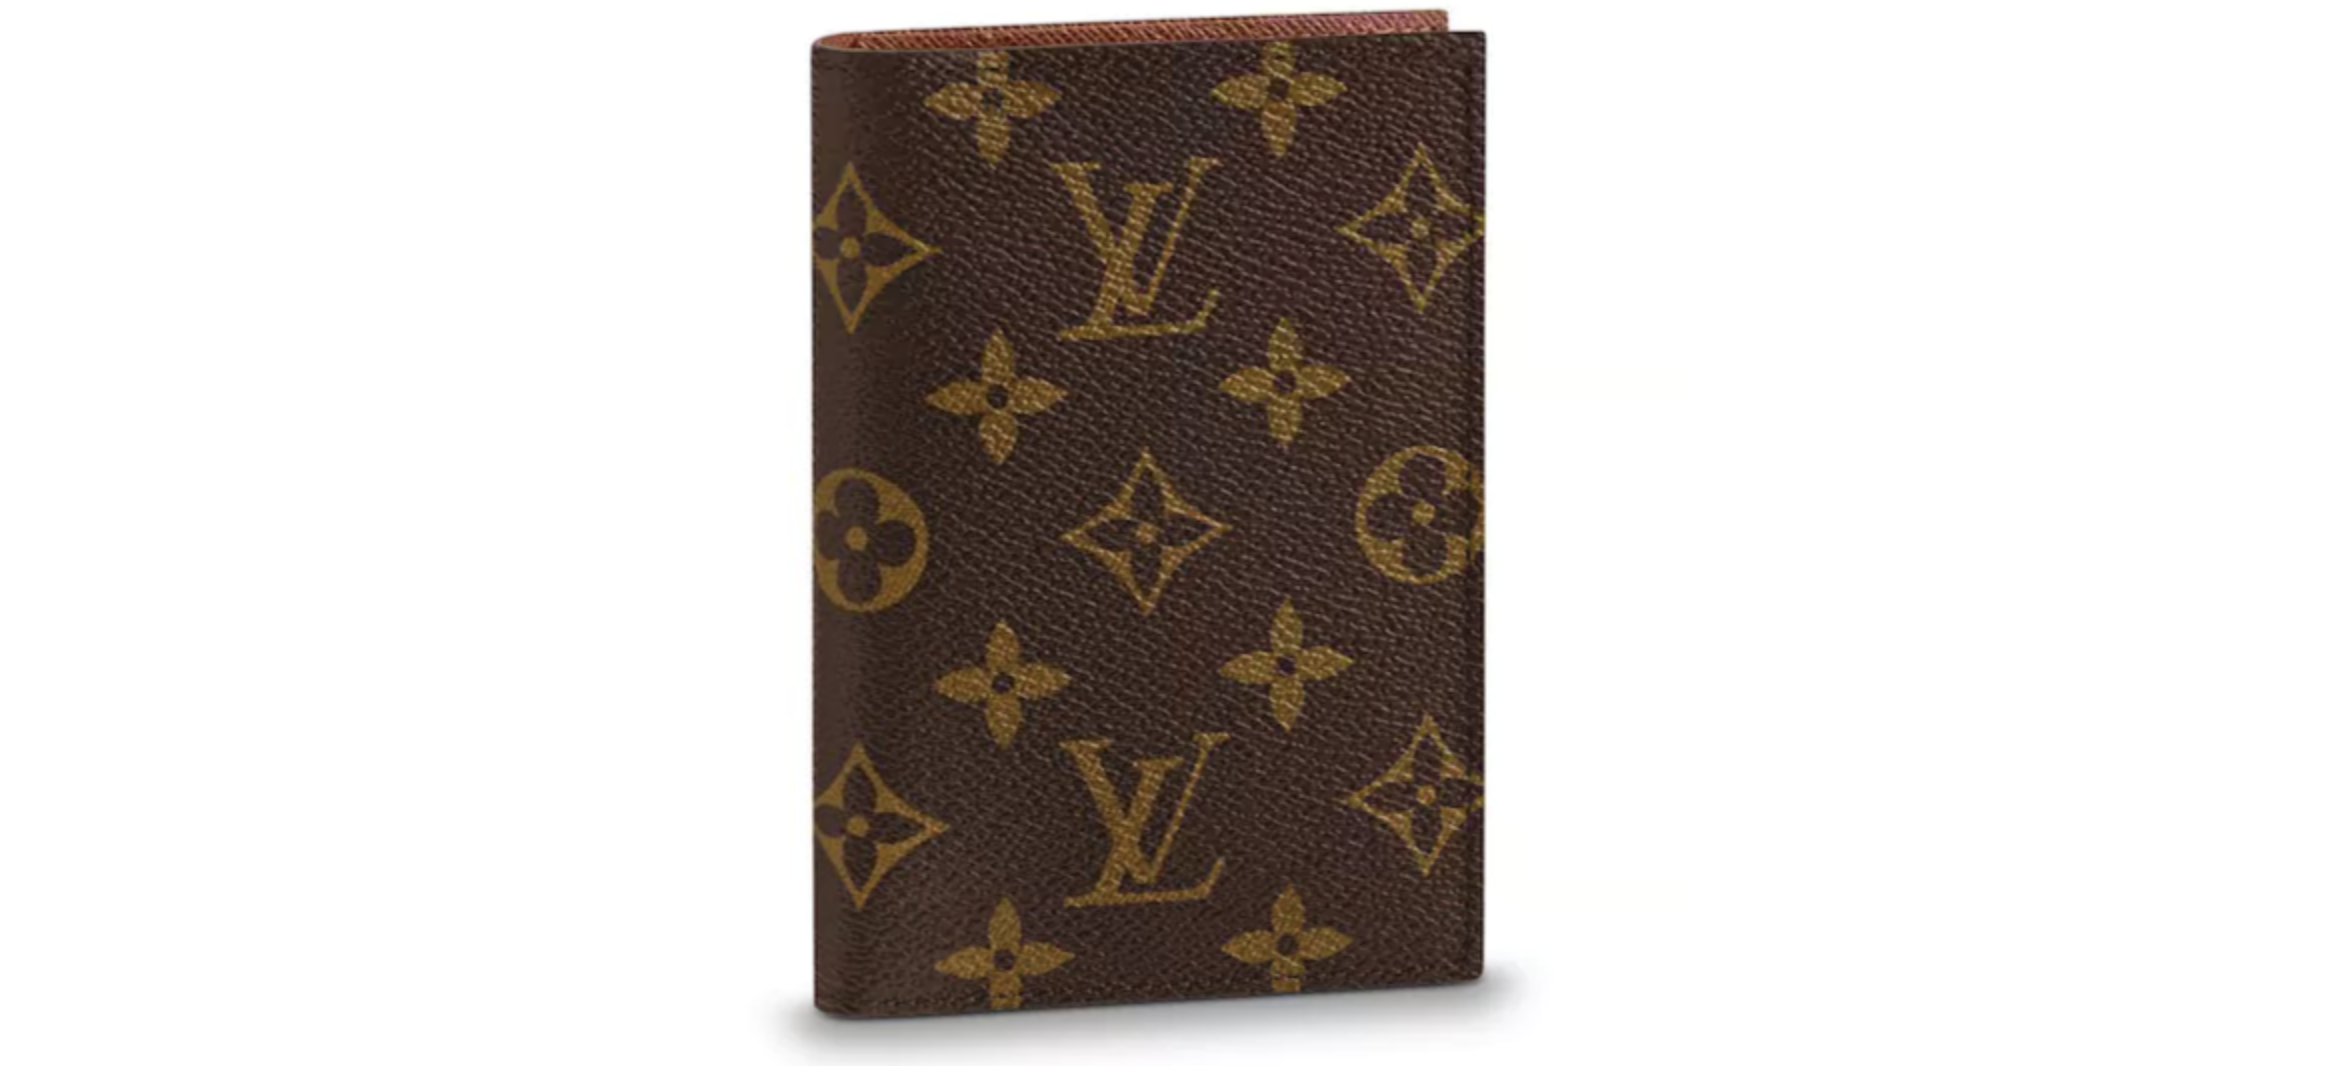 Louis Vuitton pasholder